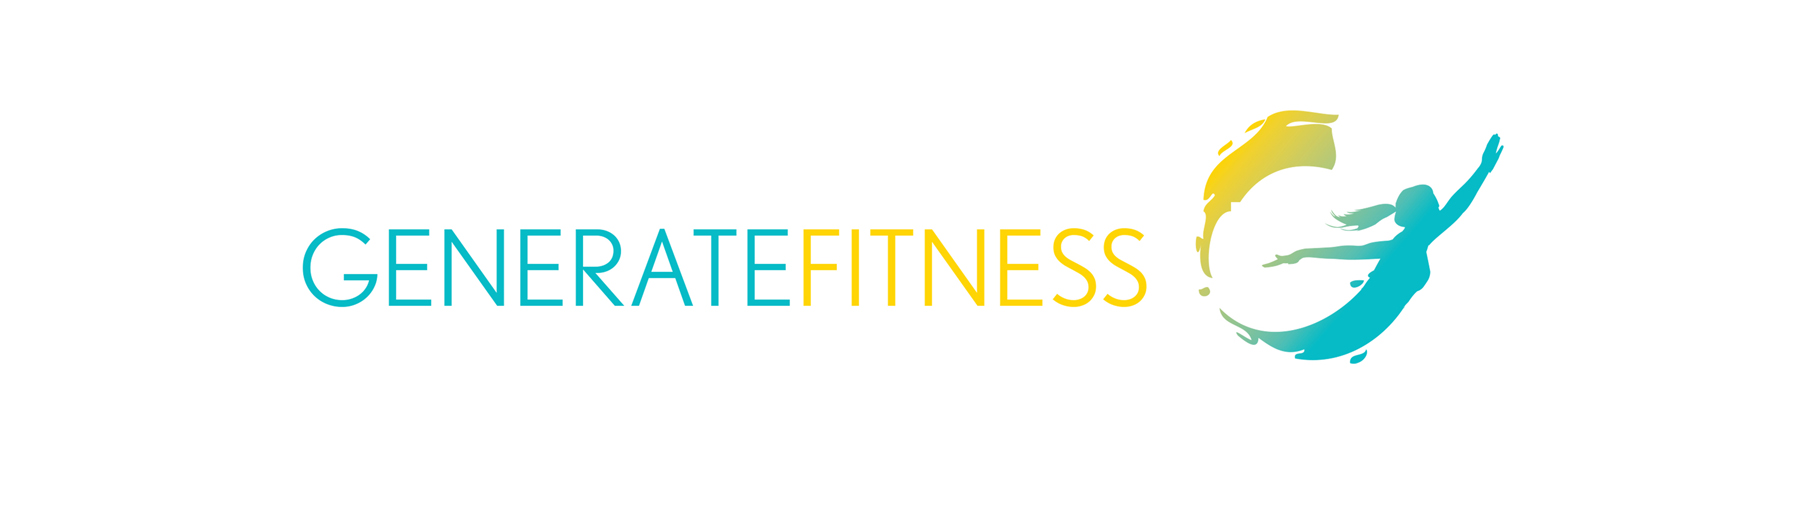 Generate Fitness Logo on white background isolated